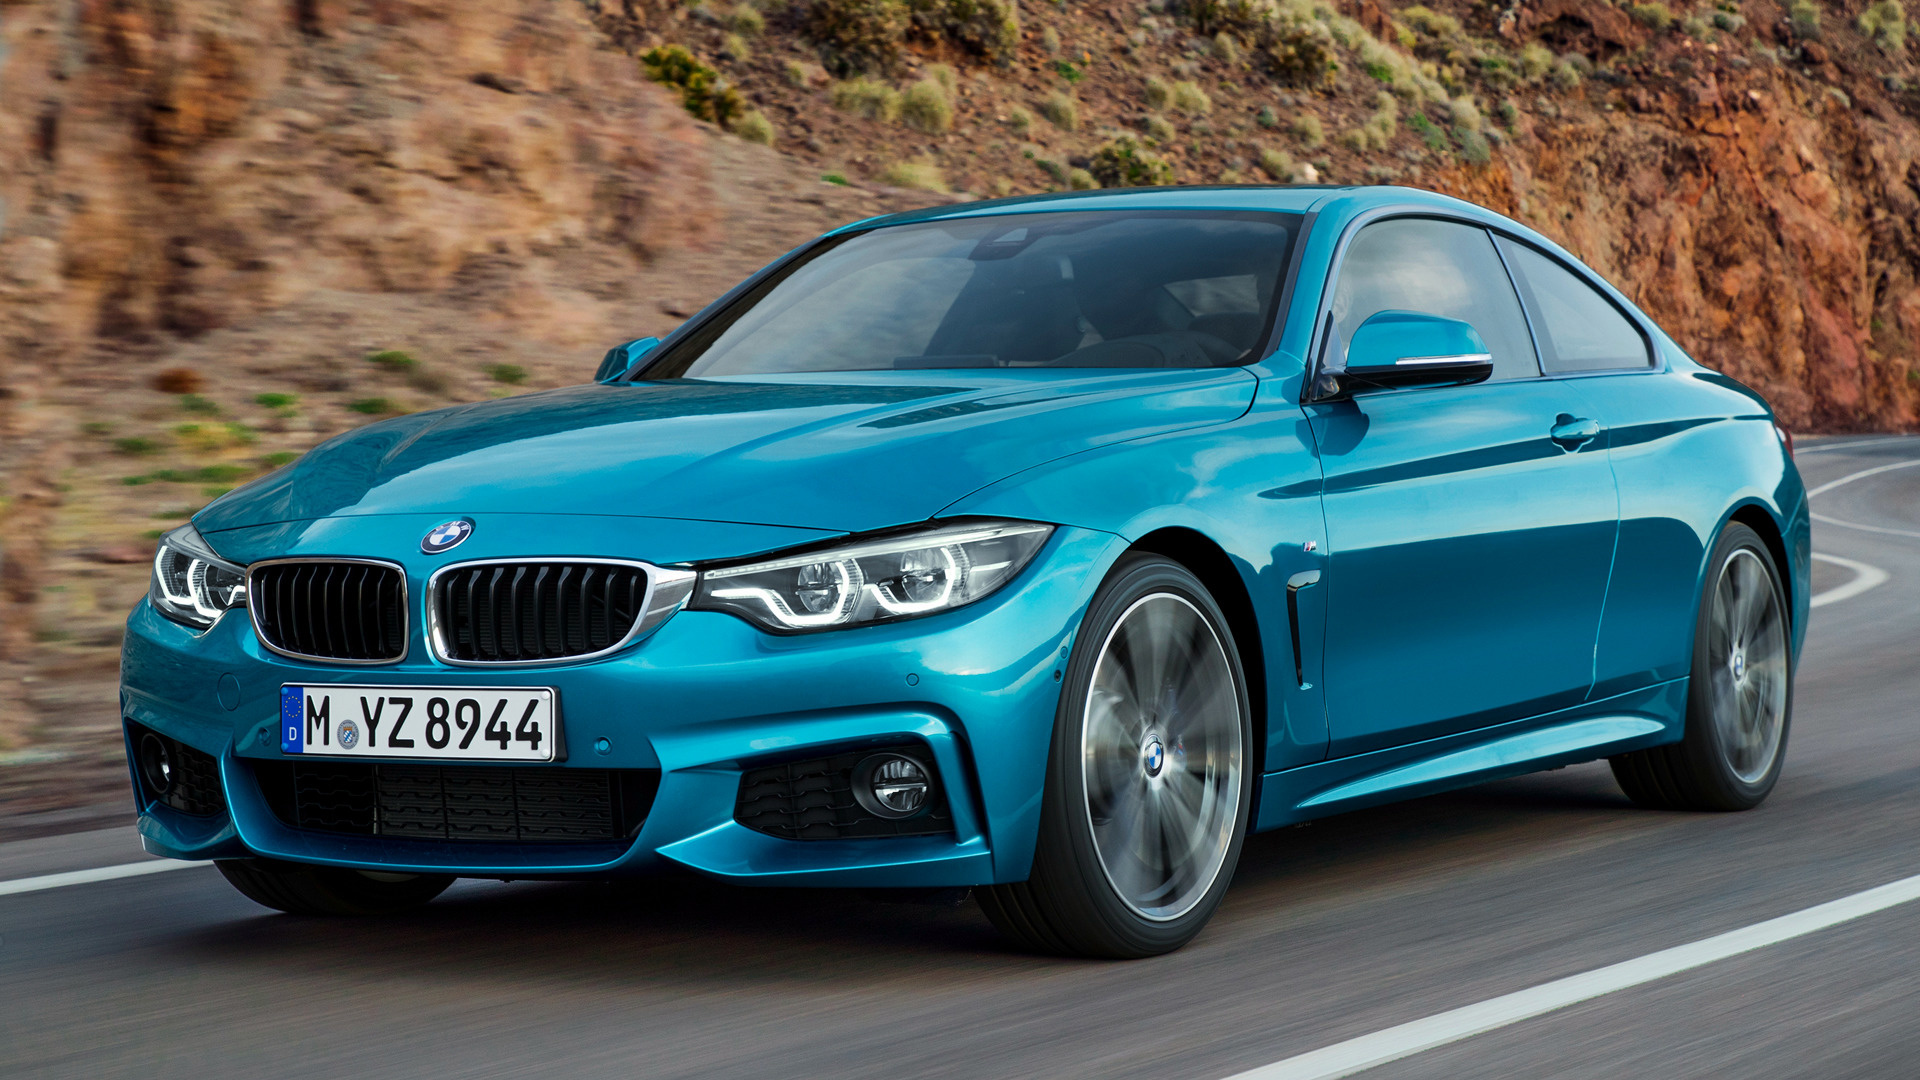 Genesis Coupe 2016 >> 2017 BMW 4 Series Coupe M Sport - Wallpapers and HD Images